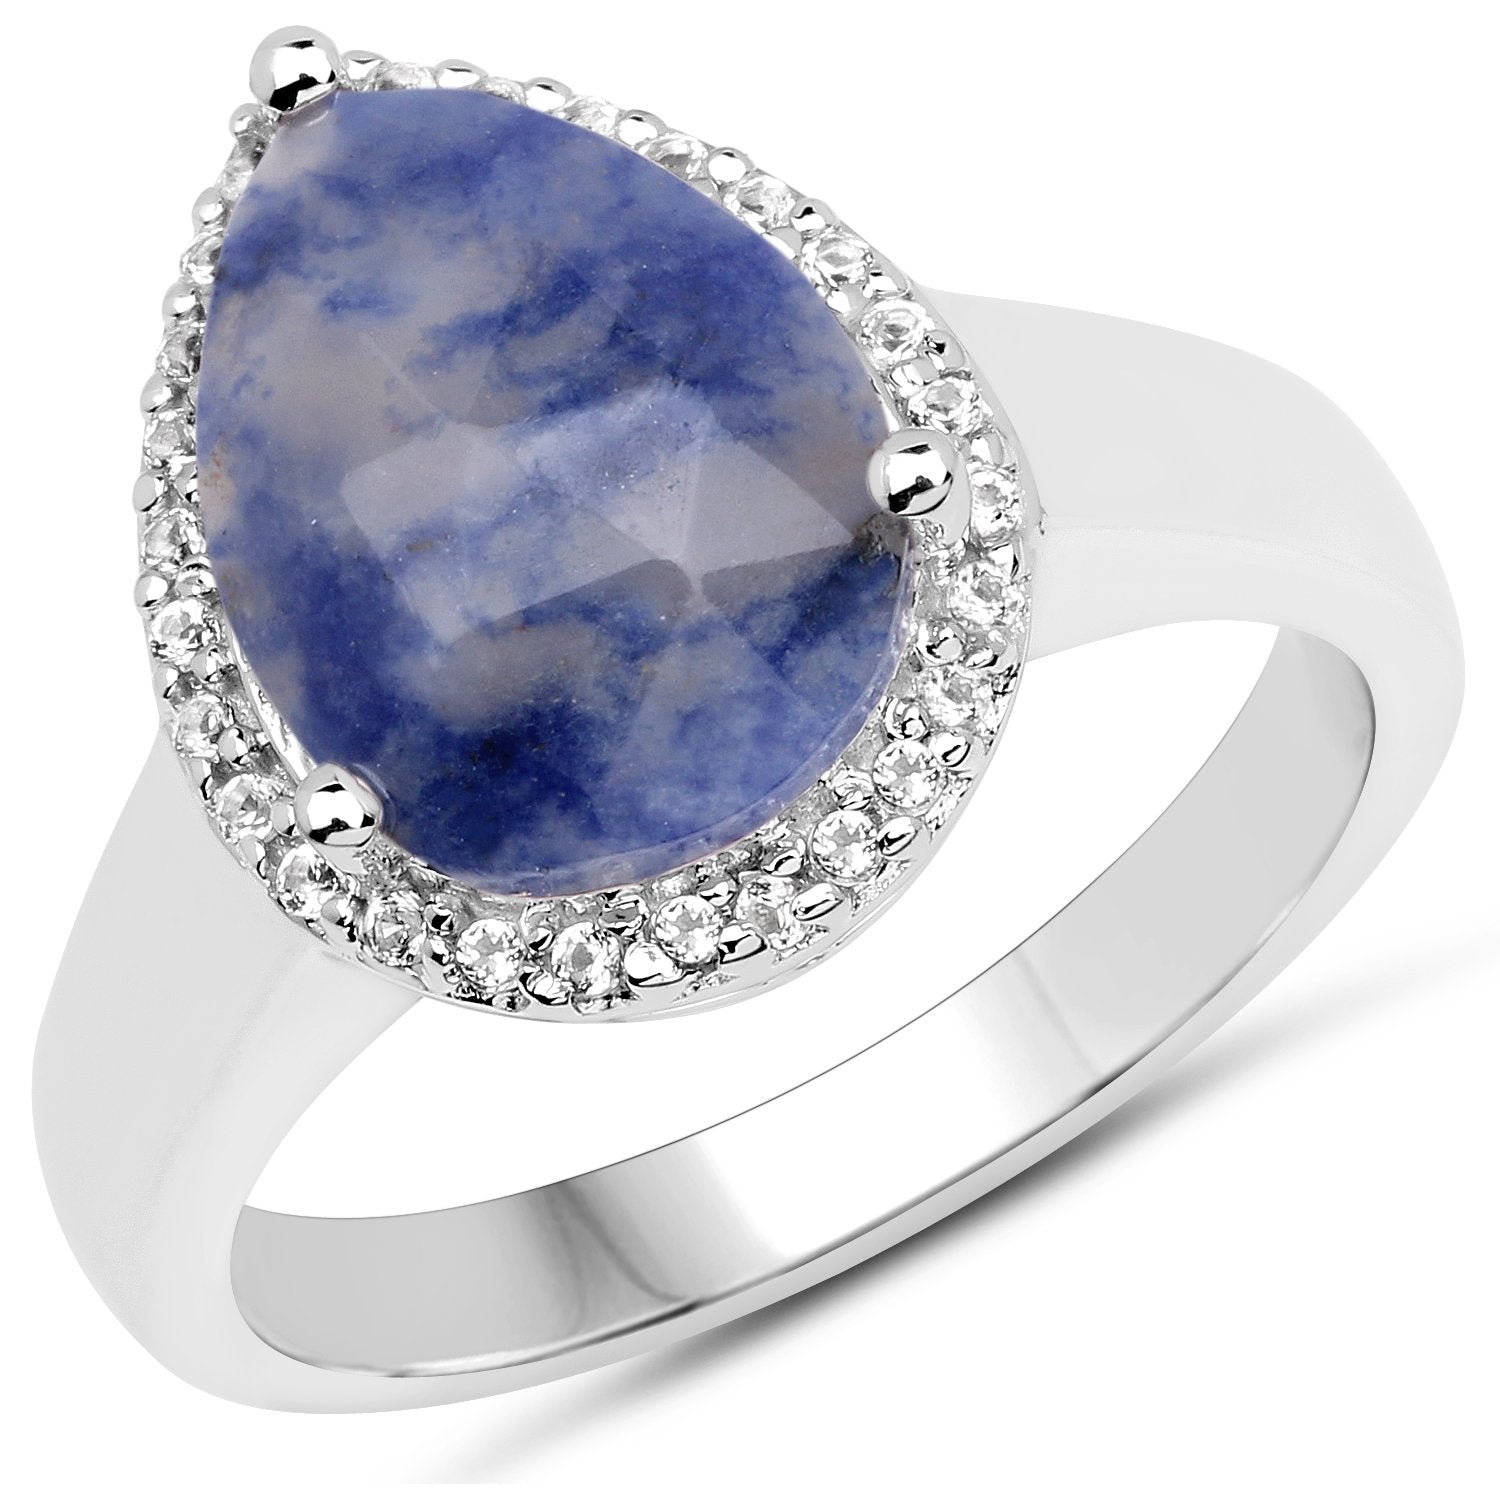 LoveHuang 2.10 Carats Genuine Blue Aventurine and White Topaz Ring Solid .925 Sterling Silver With Rhodium Plating